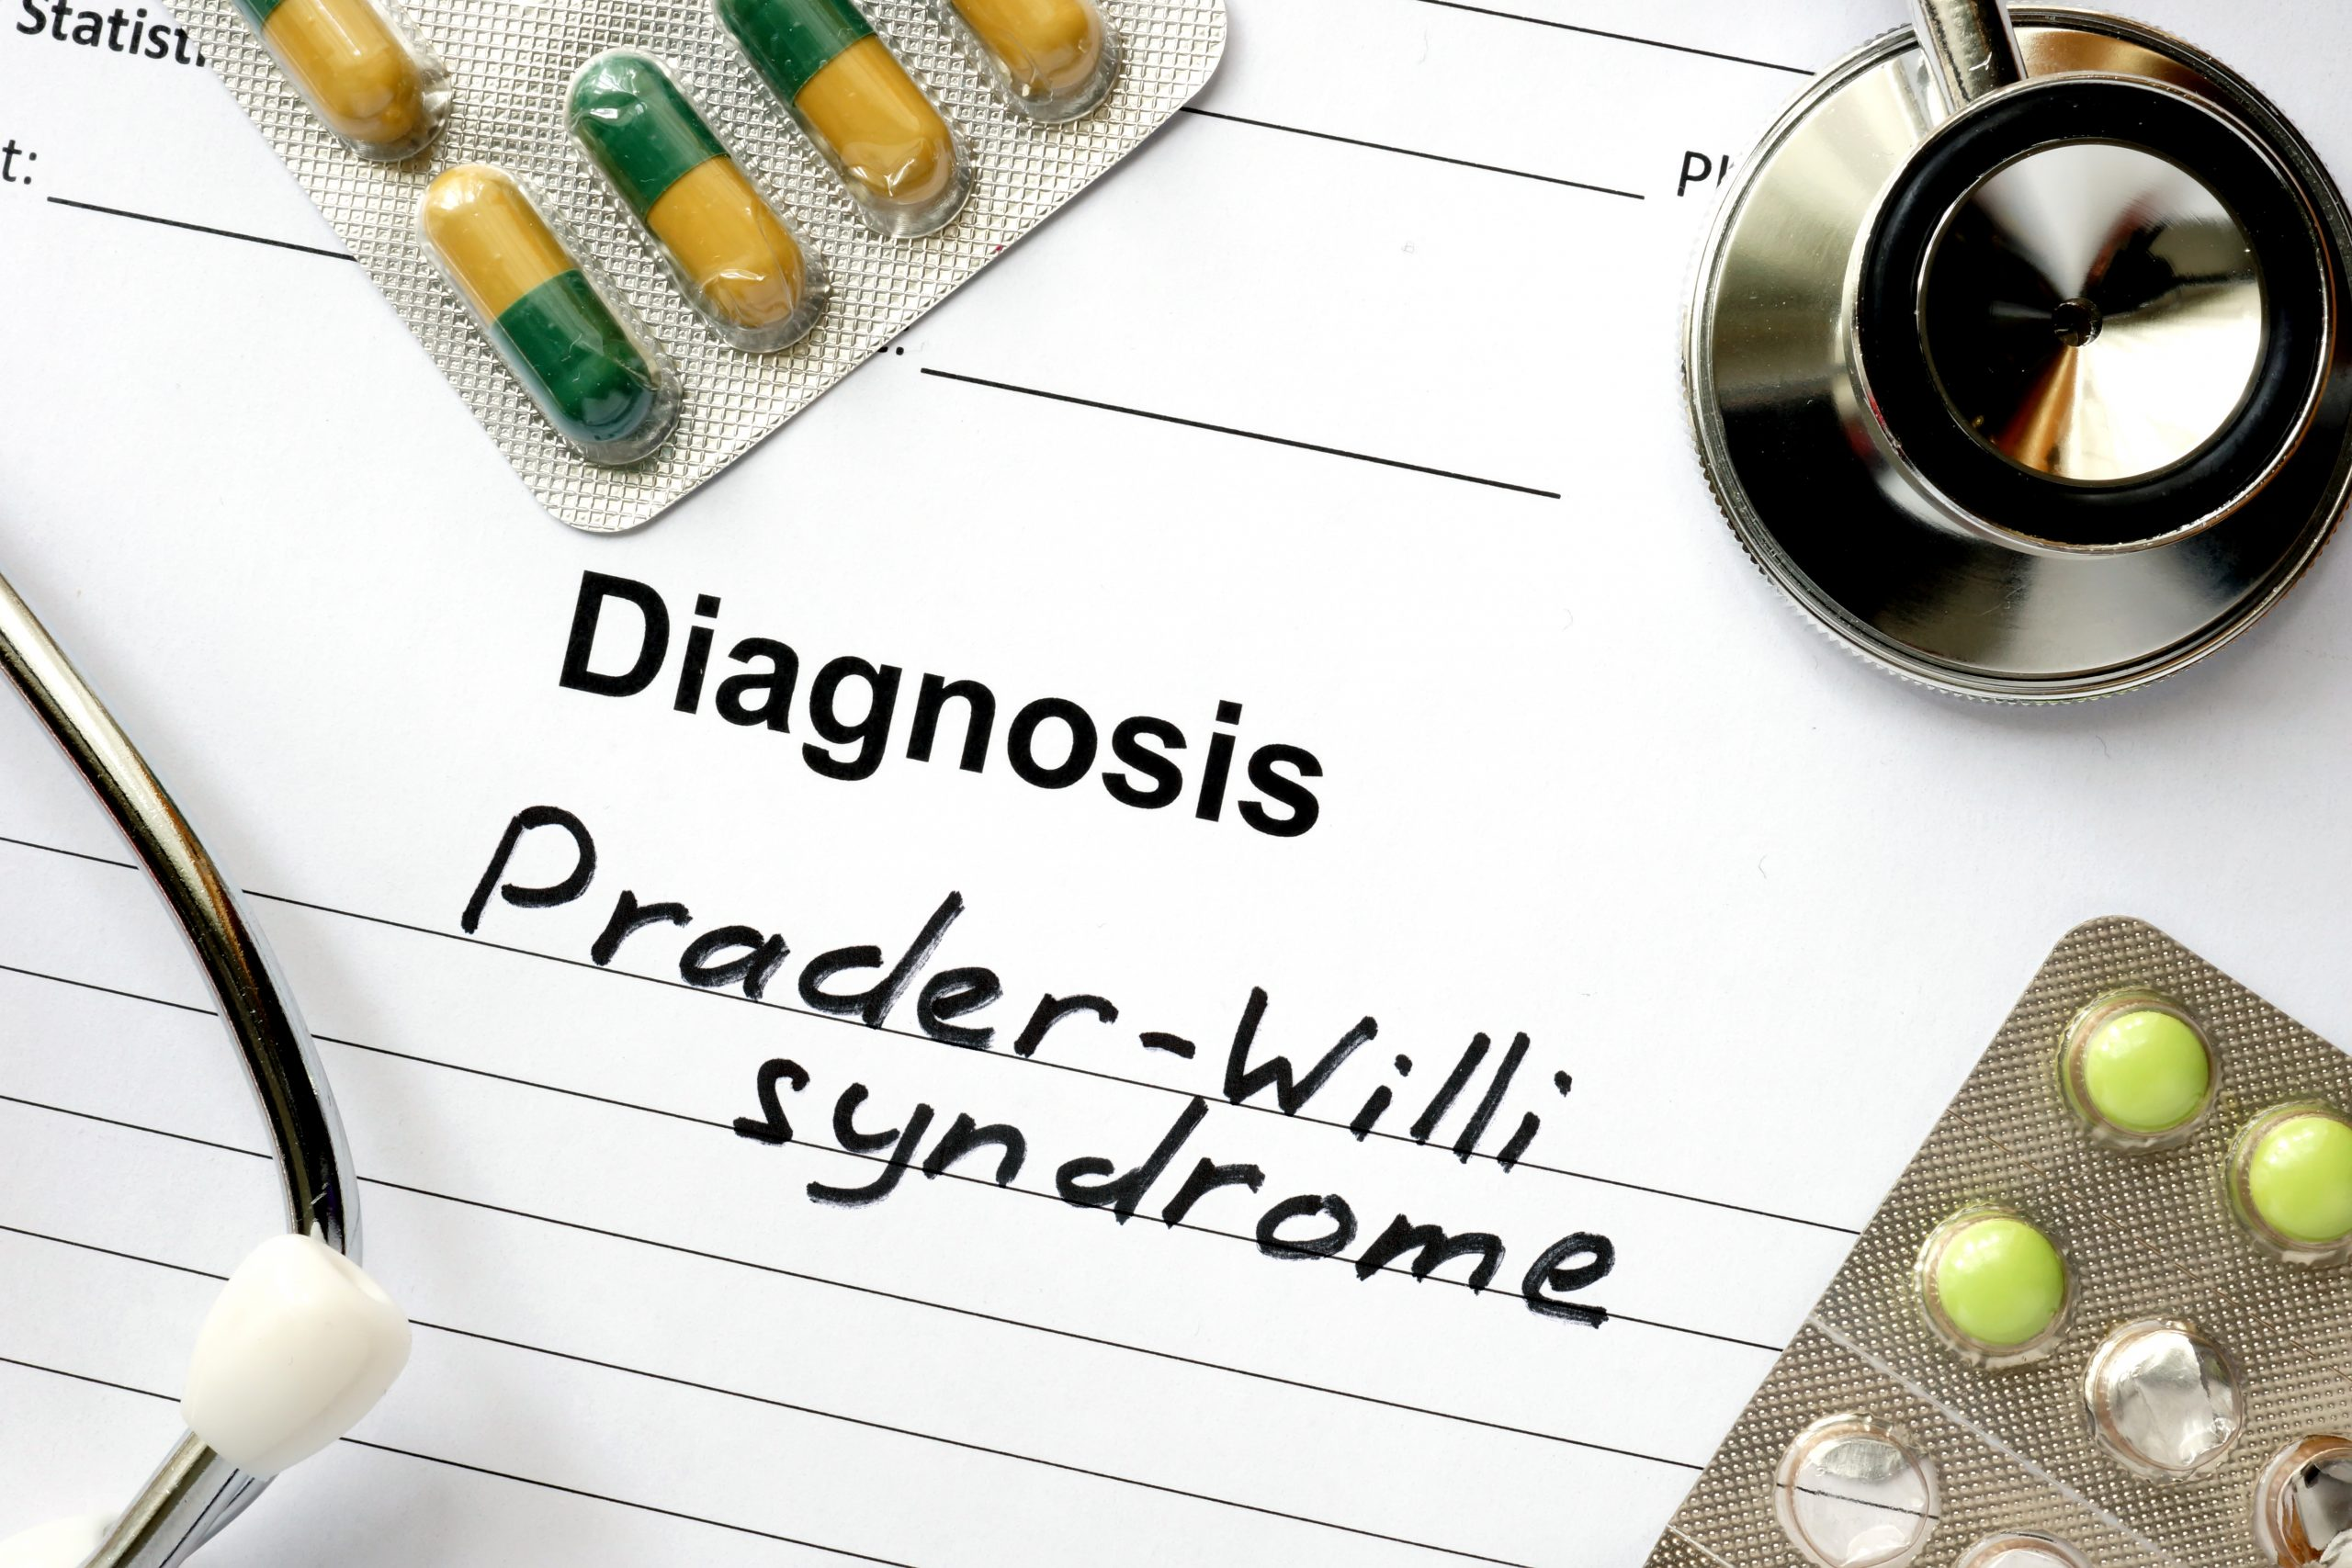 What is Prader-Willi Syndrome?